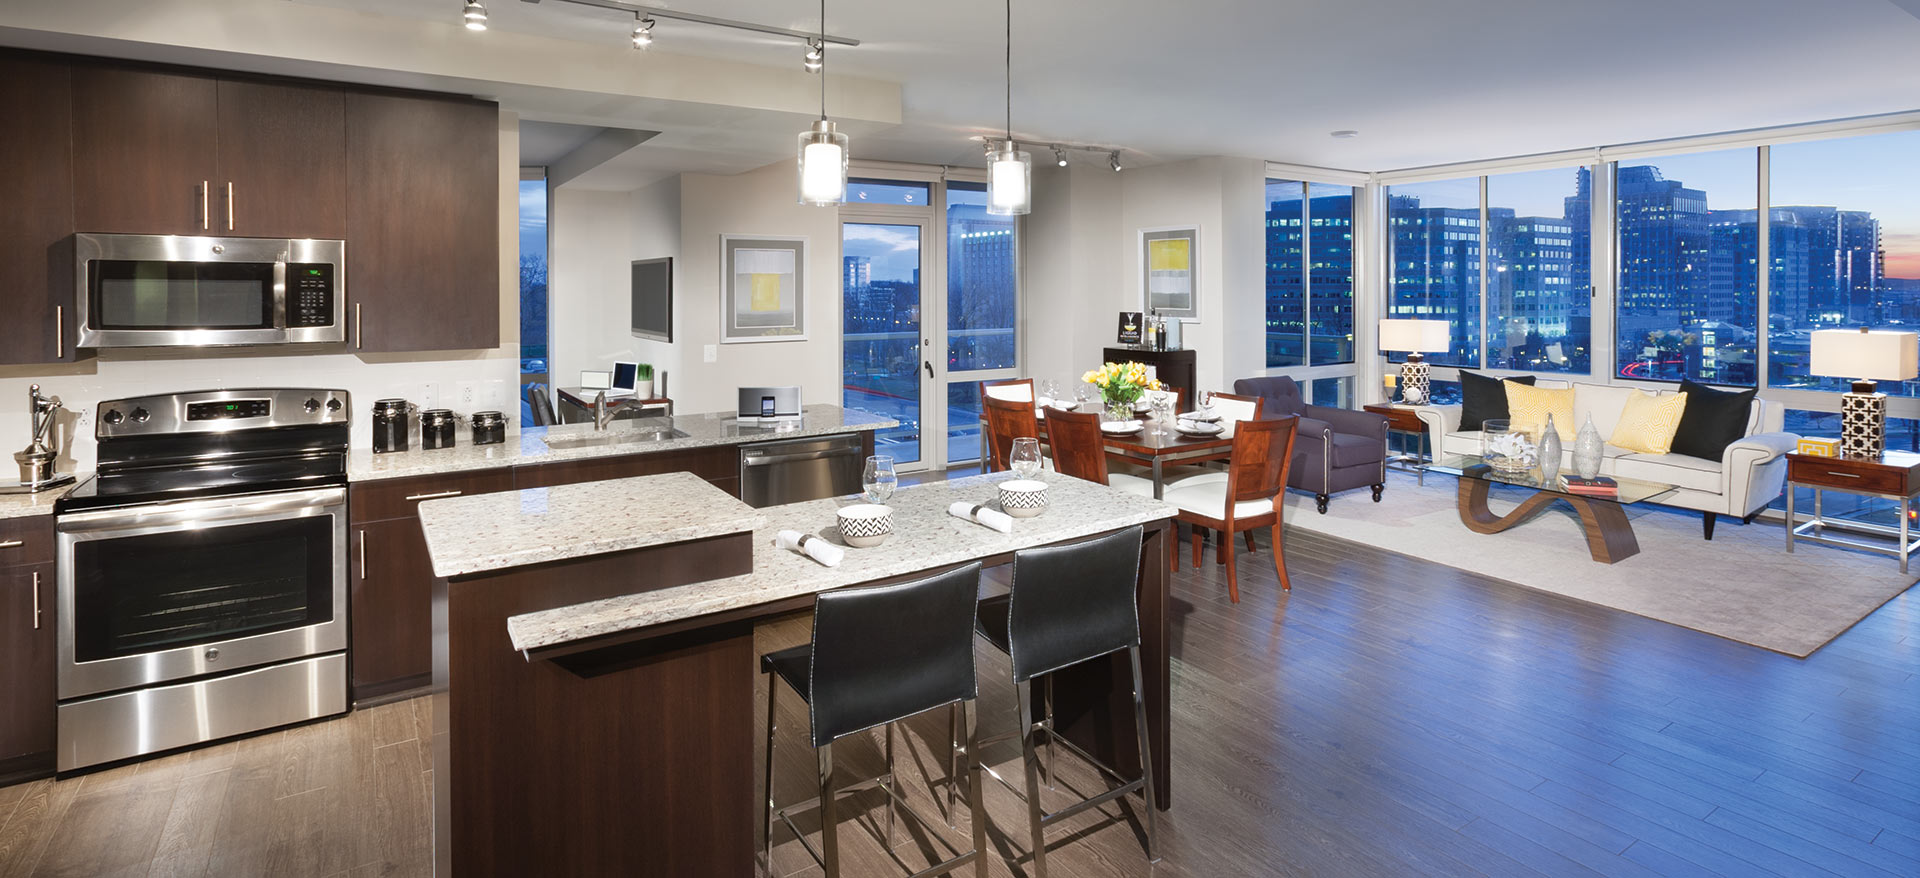 Residence kitchen and living room at The Harrison